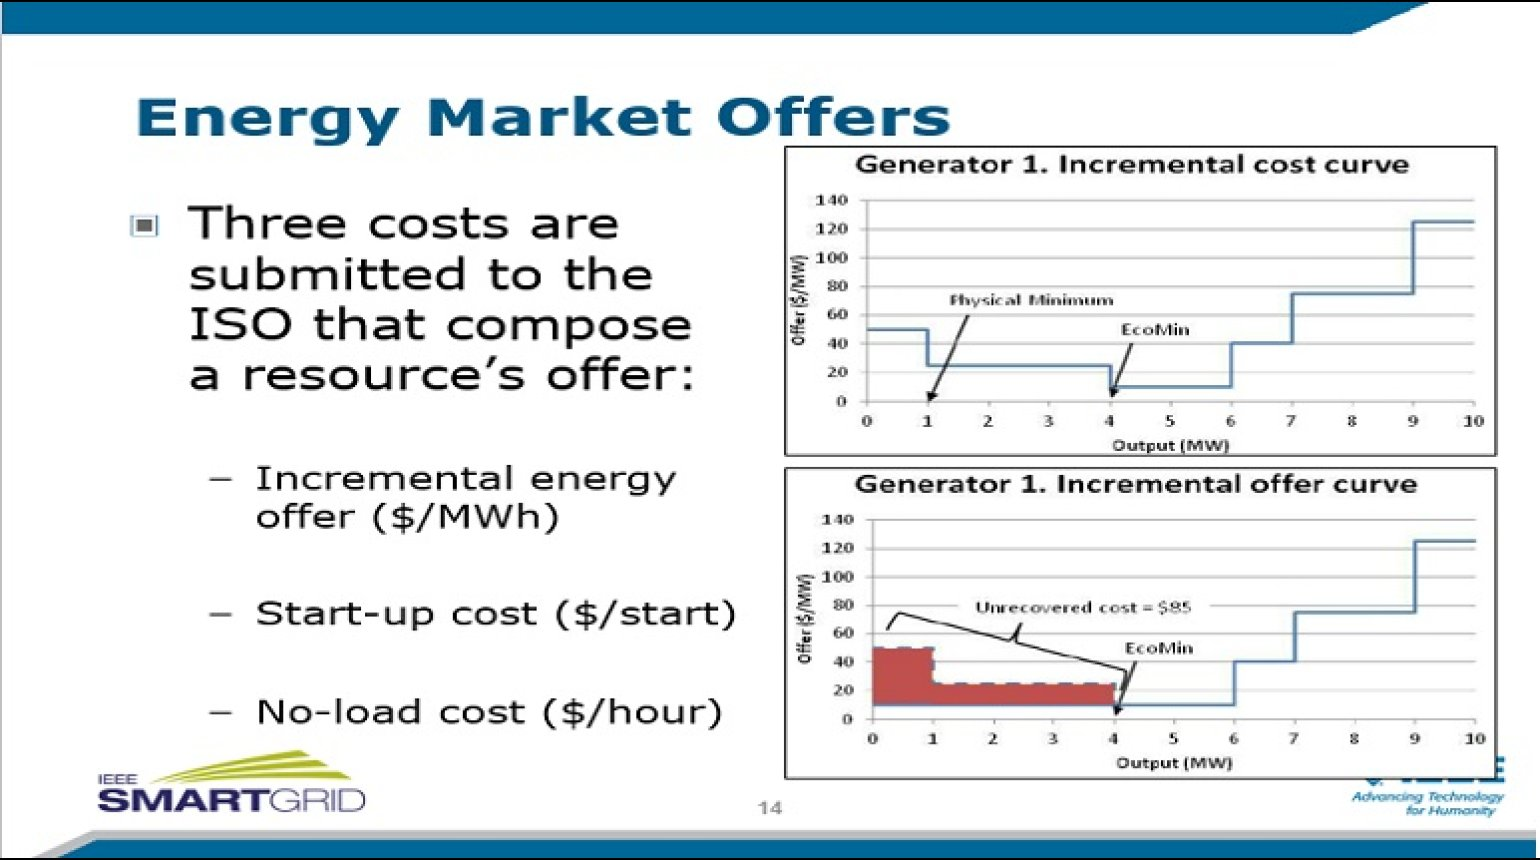 Wholesale Electricity Market Modeling and Pricing presented by Dr. Anthony Giacomoni - Session 2